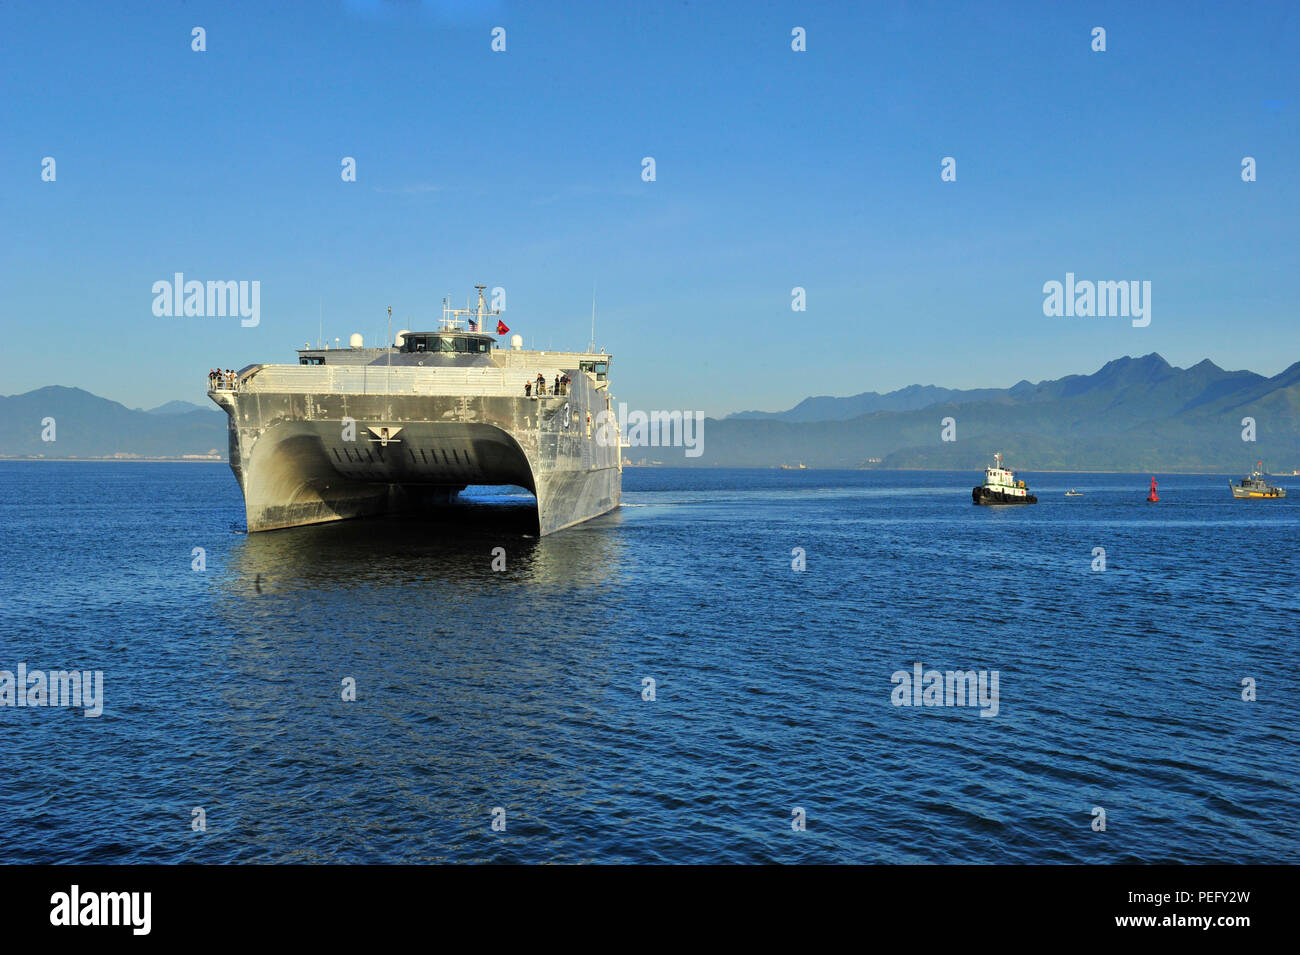 150817-N-YF678-033 DA NANG, Vietnam (Aug. 17, 2015) – The Military Sealift Command joint high speed vessel USNS Millinocket (JHSV 3) arrives in Vietnam, Aug. 17. Vietnam is the fifth stop for Millinocket and embarked Task Force Forager. Millinocket and embarked Task Force Forager are serving as the secondary platform for Pacific Partnership, led by an expeditionary command element from the Navy's 30th Naval Construction Regiment (30 NCR) from Port Hueneme, Calif. Now in its 10th iteration, Pacific Partnership is the largest annual multilateral humanitarian assistance and disaster relief prepar - Stock Image